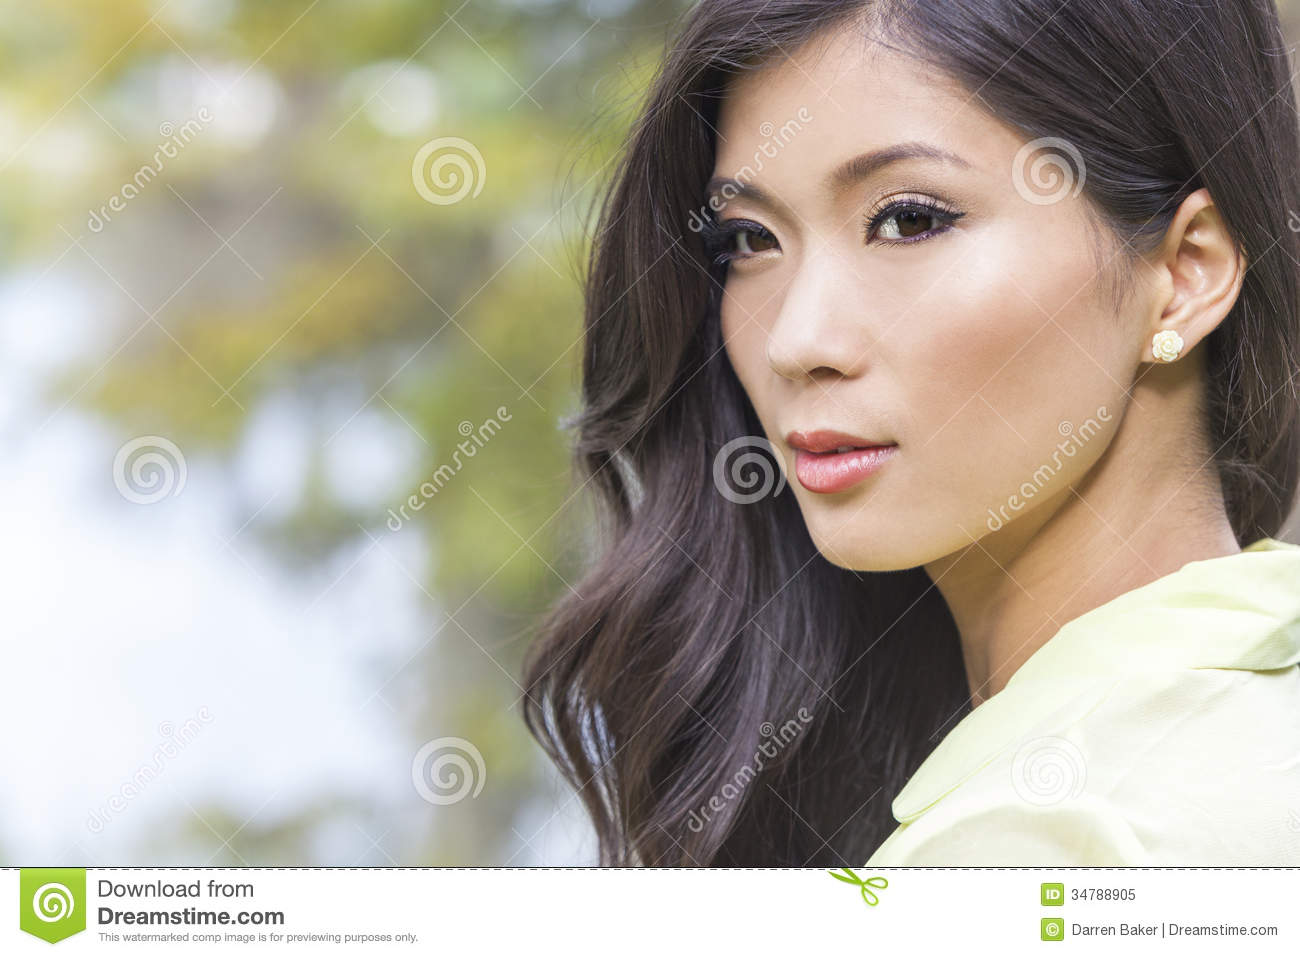 belle fille asiatique lorient